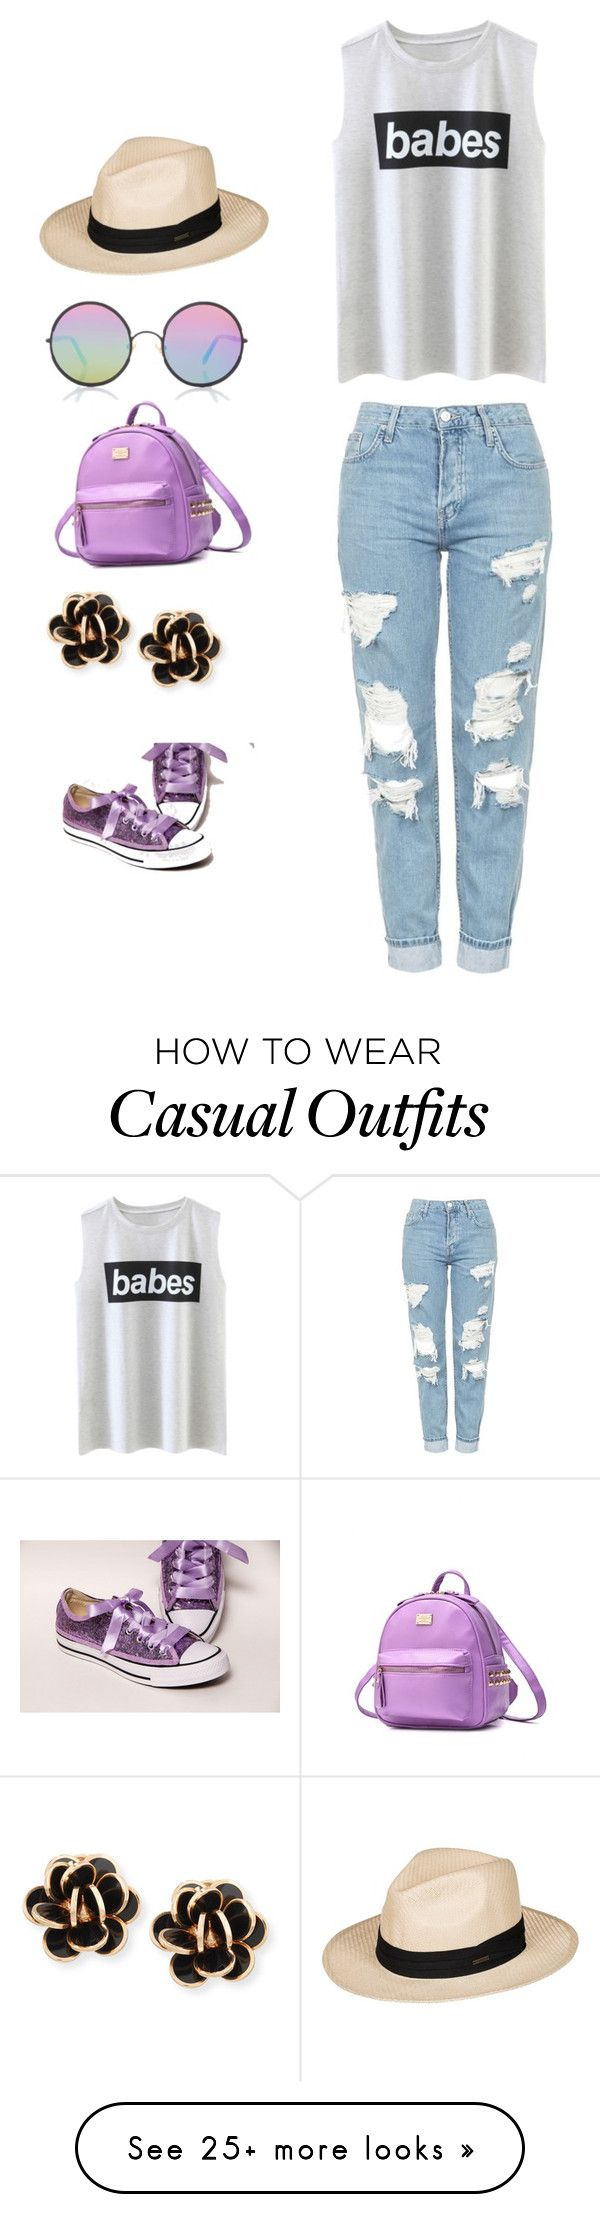 """Casual shoe and bag matching"" by pepper-silliman-1 on Polyvore featuring Topshop, Roxy, Sunday Somewhere and Chantecler"